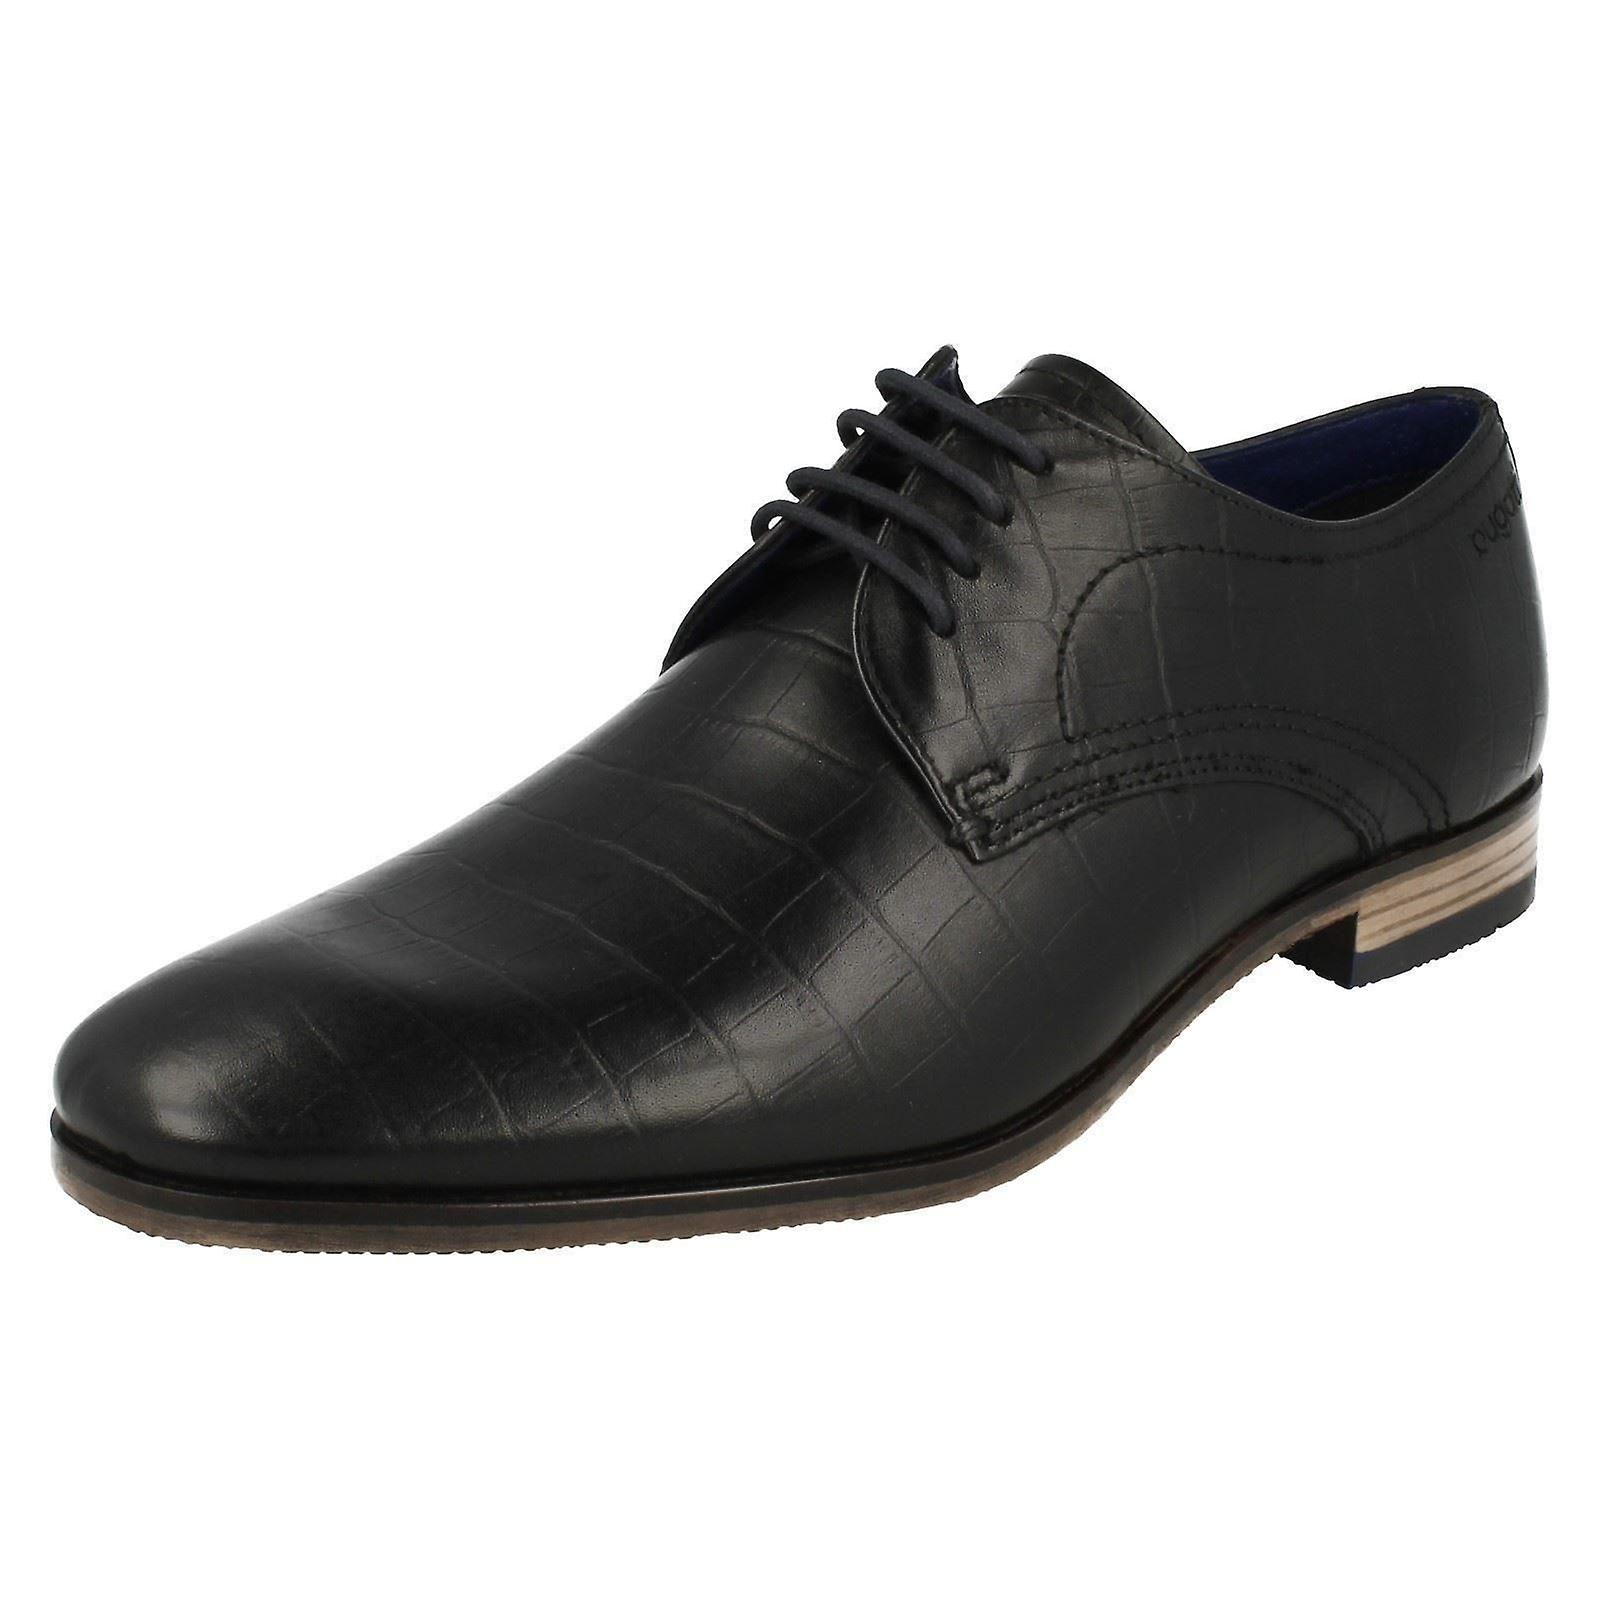 Mens Bugatti Smart formelle Lace Up chaussures 312-10501-1000-1000